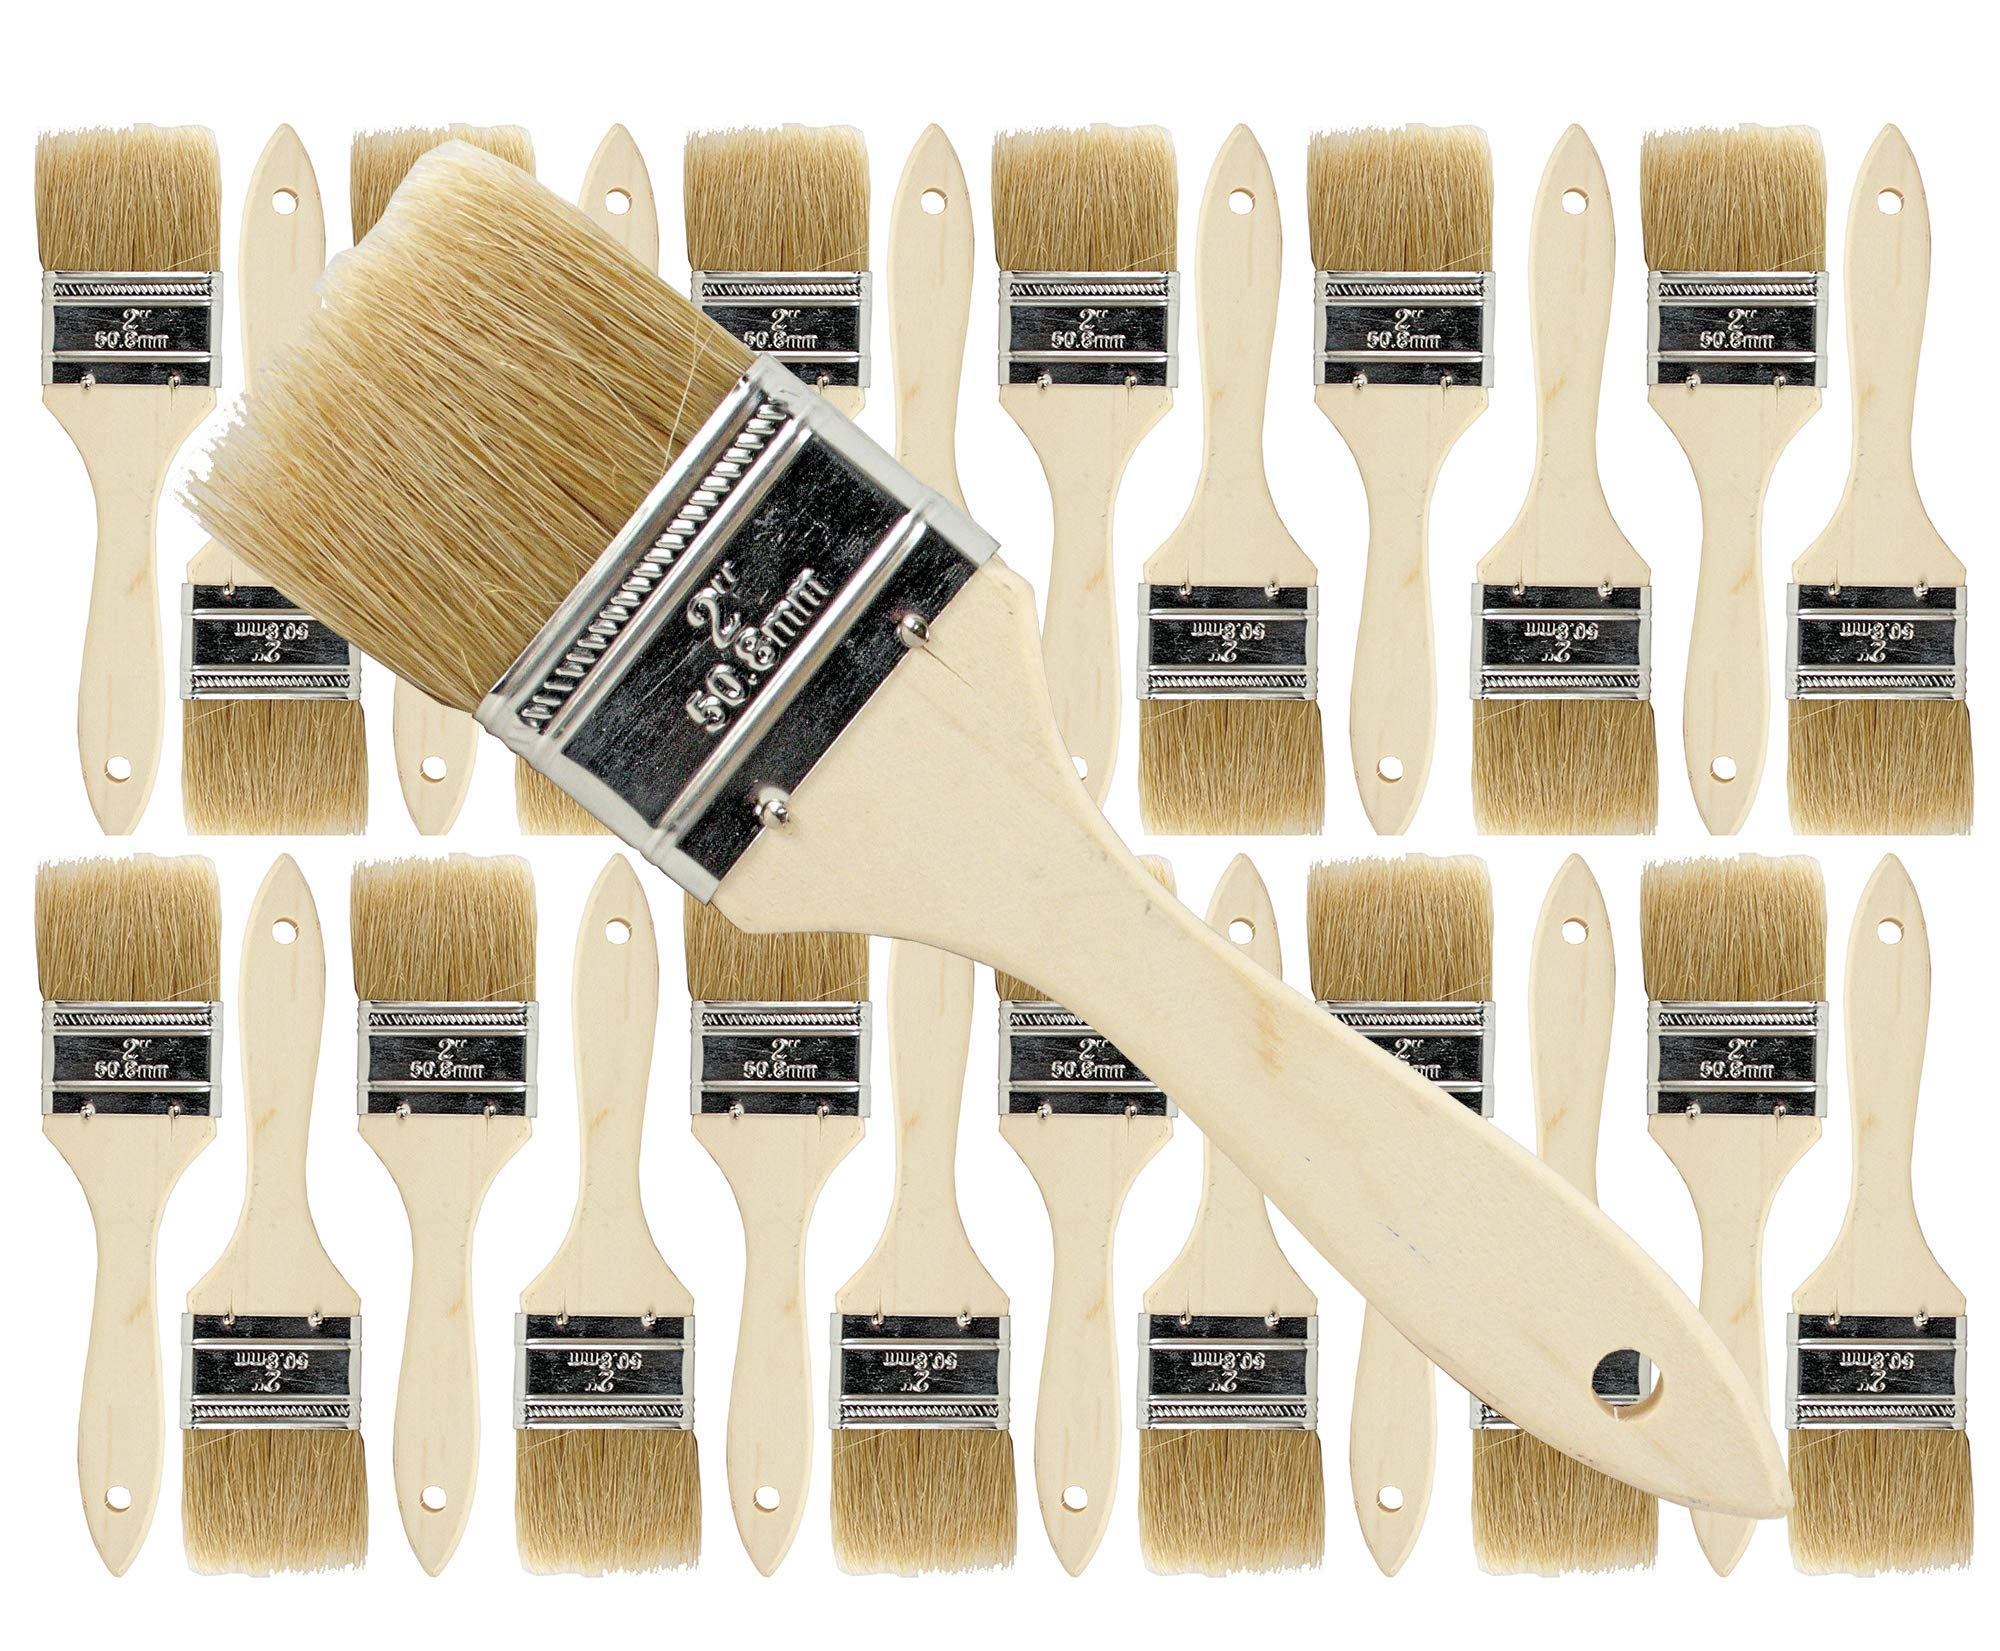 Pro Grade - Chip Paint Brushes - 24 Ea 2 Inch Chip Paint Brush by Pro Grade